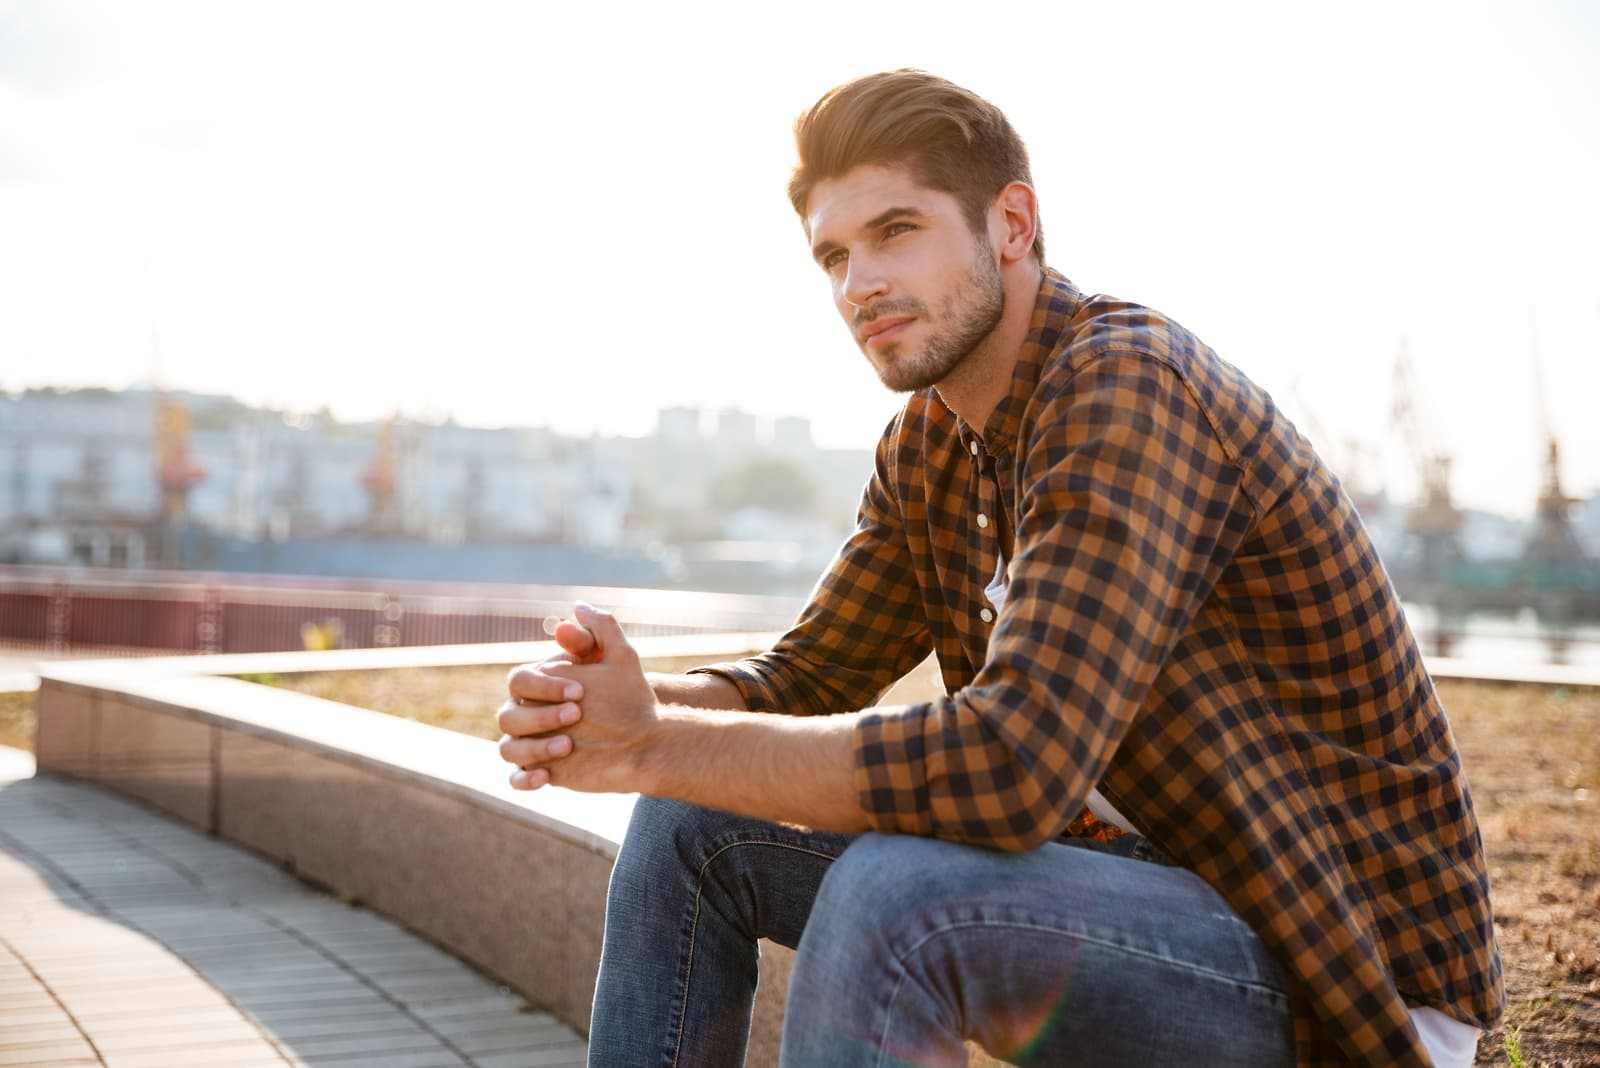 Pensive young man in plaid shirt